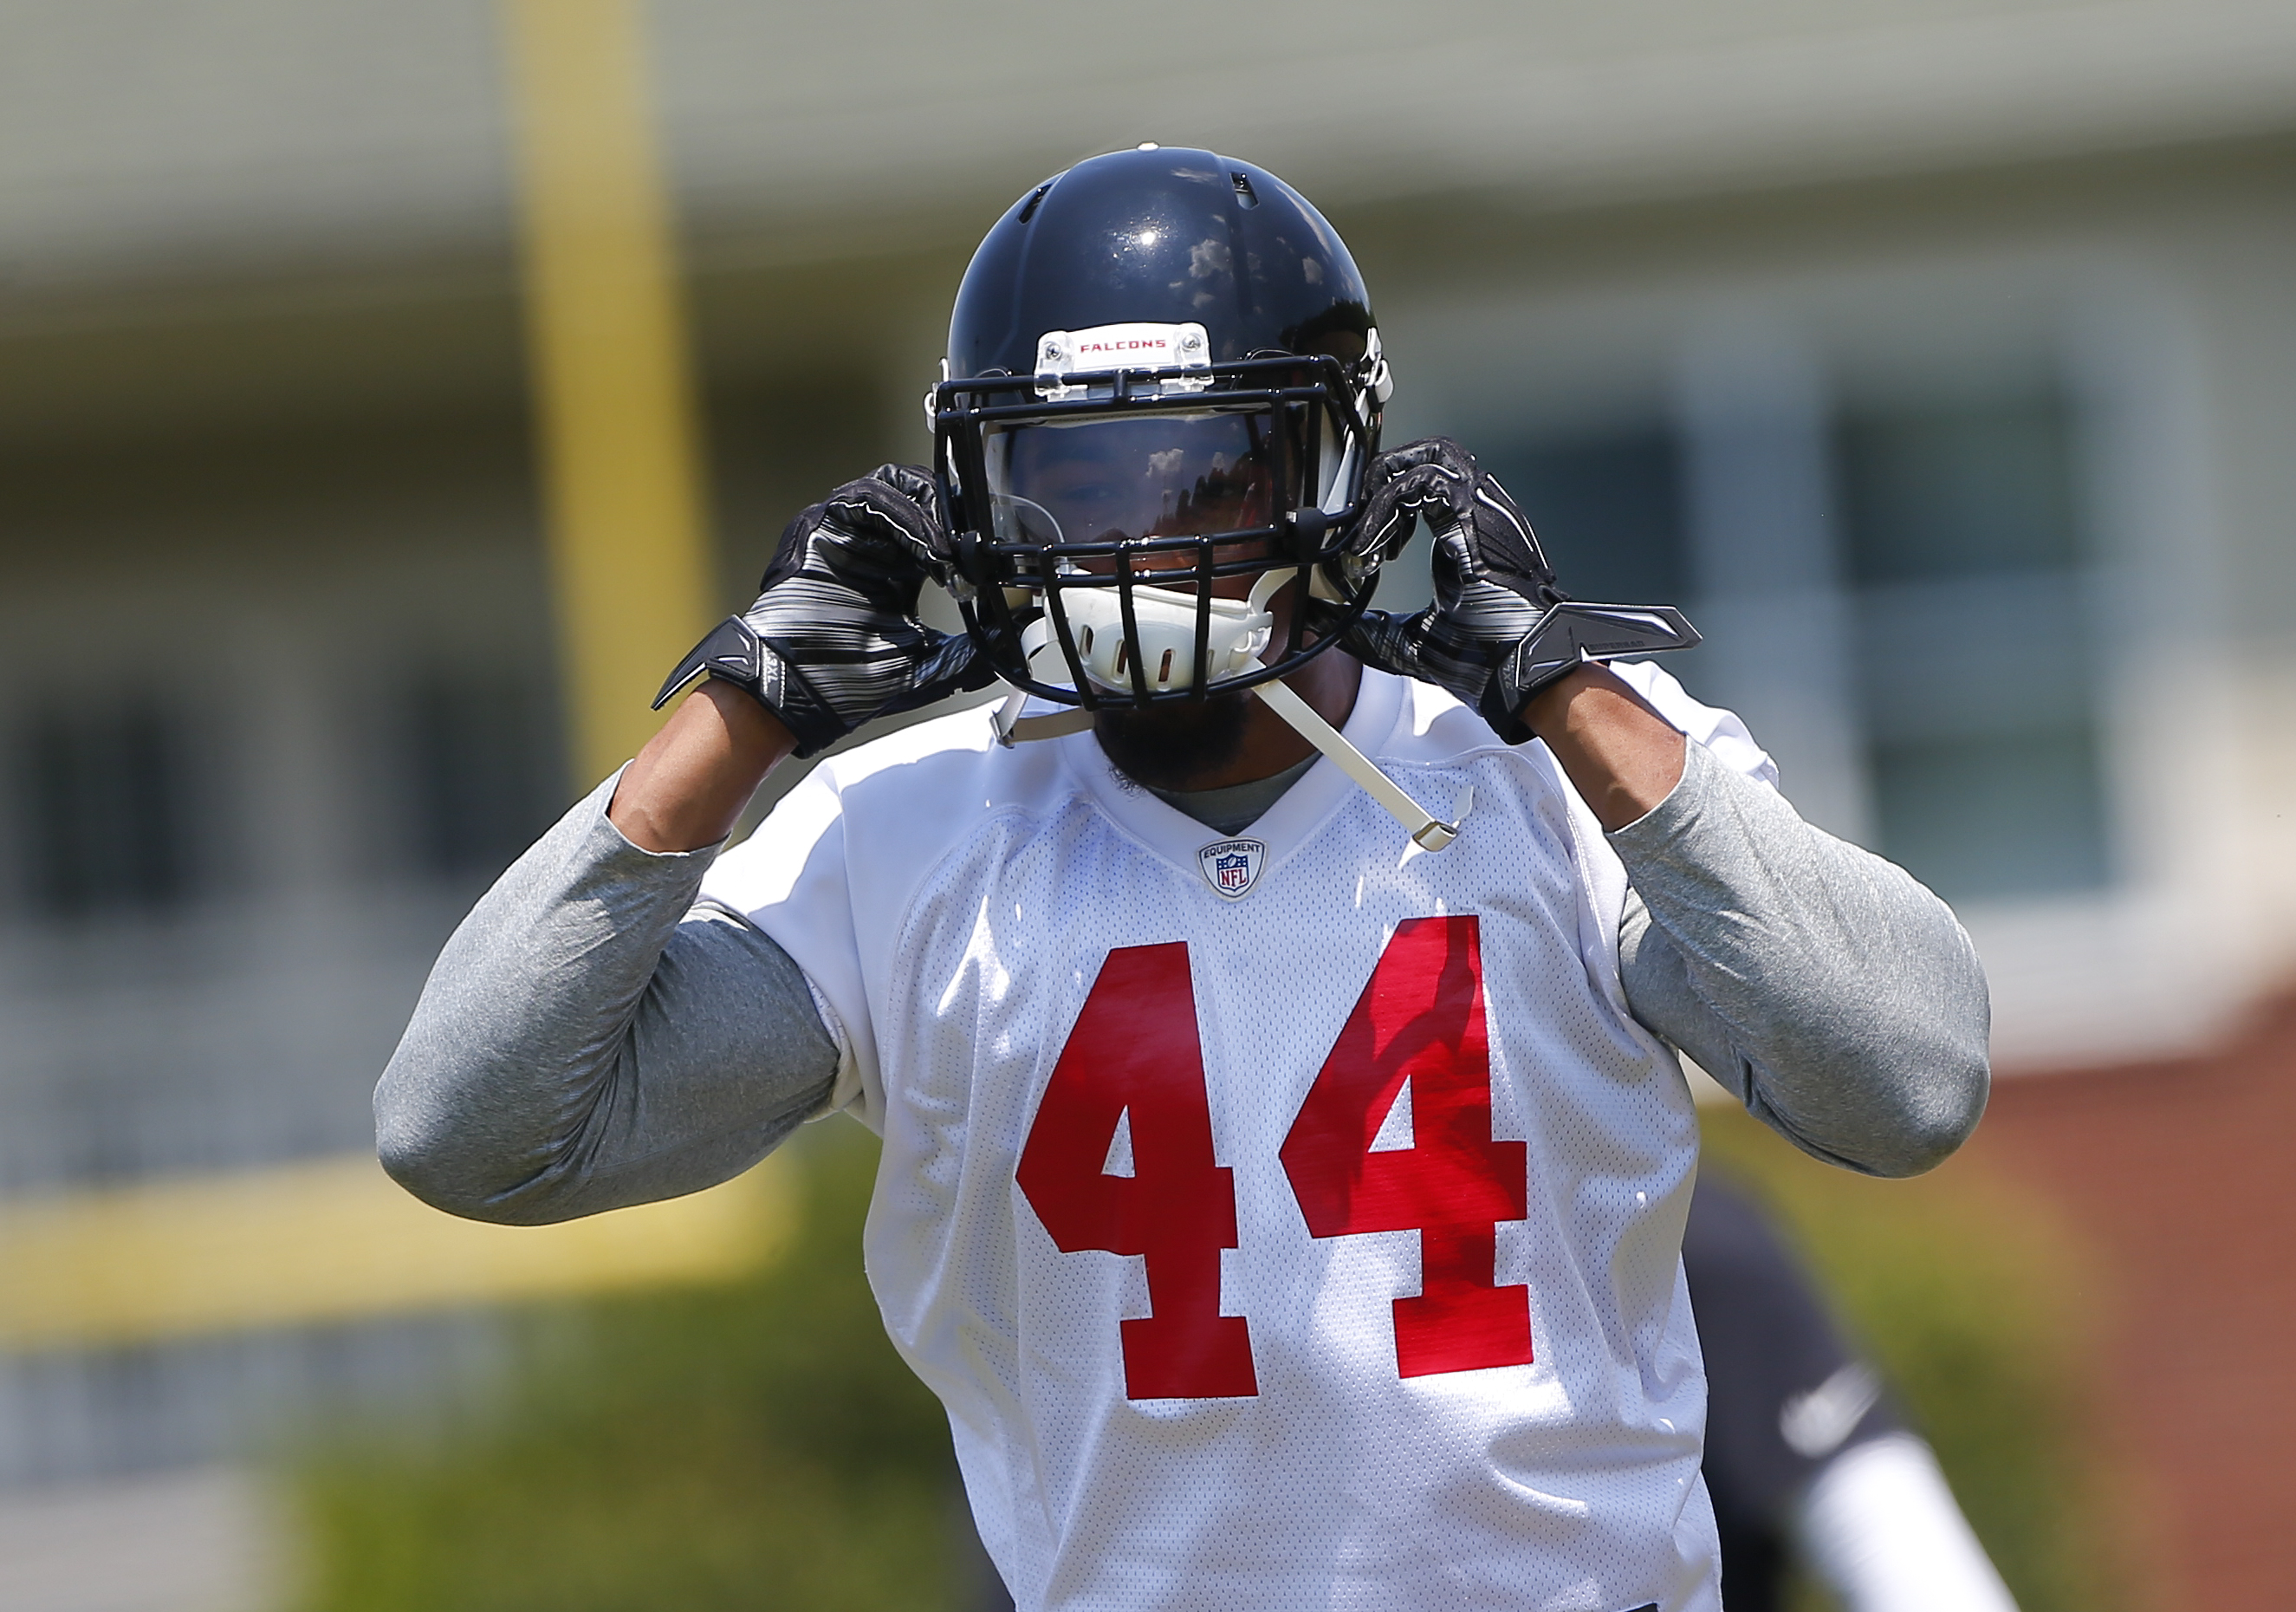 FILE - In this May 8, 2015, file photo, Atlanta Falcons first round pick Vic Beasley adjusts his helmet during the first day of NFL football rookie minicamp  in Flowery Branch, Ga. Beasley has had a busy, productive week. First he signed a $14.5 million c